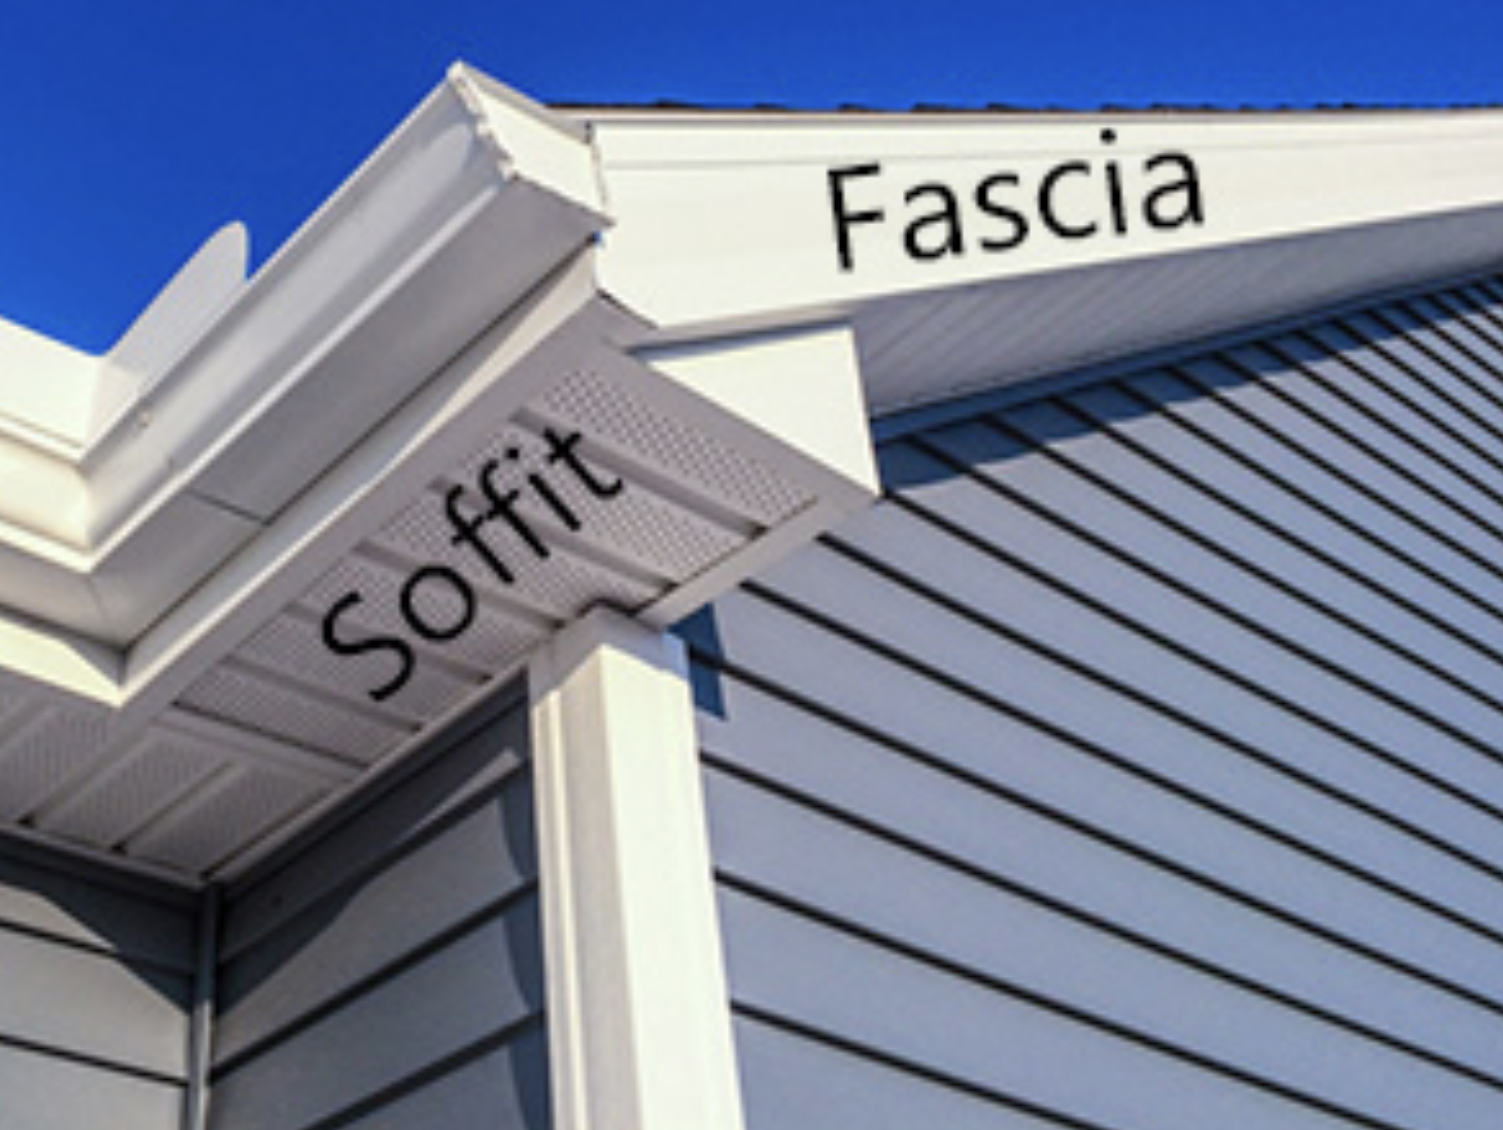 Soffit, facia metal and gutter systems are not only attractive, but also very practical. They serve as a protector for your facia wood and also retain the soffit vinyl giving it a nice finished look